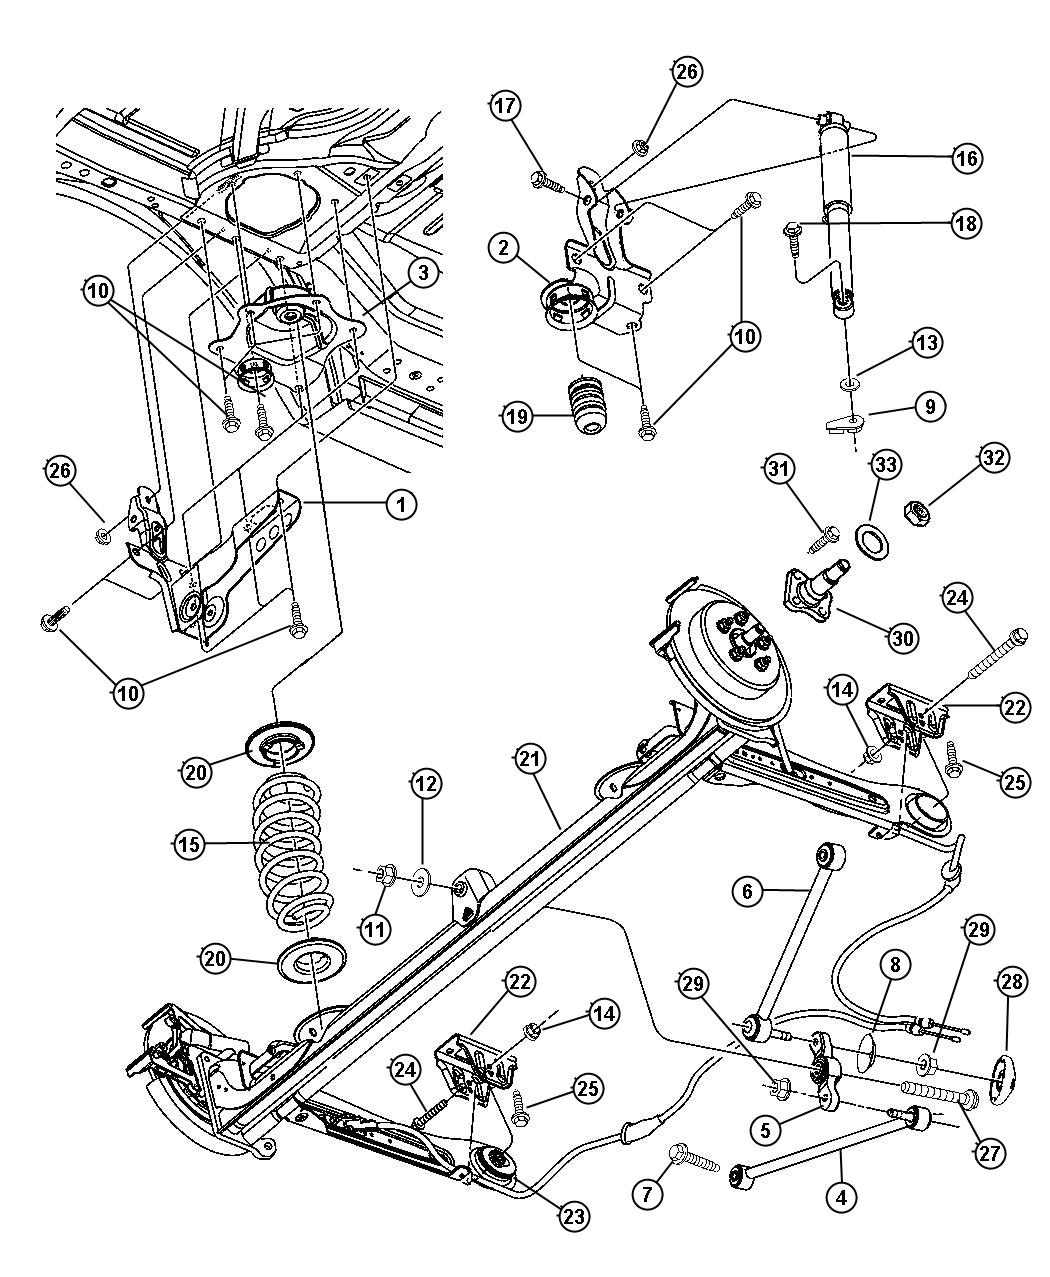 Lincoln Mkz Wiring Diagram furthermore 115011877827 DTC Code 8 1 And 8 5 together with 55874 Wiring Diagram Power Heated Mirrors further Ford Explorer Mk2 Fuse Boc Diagram Usa Version besides Ford Focus Ecoboost Engine Specs. on ford focus heated seat wiring diagram